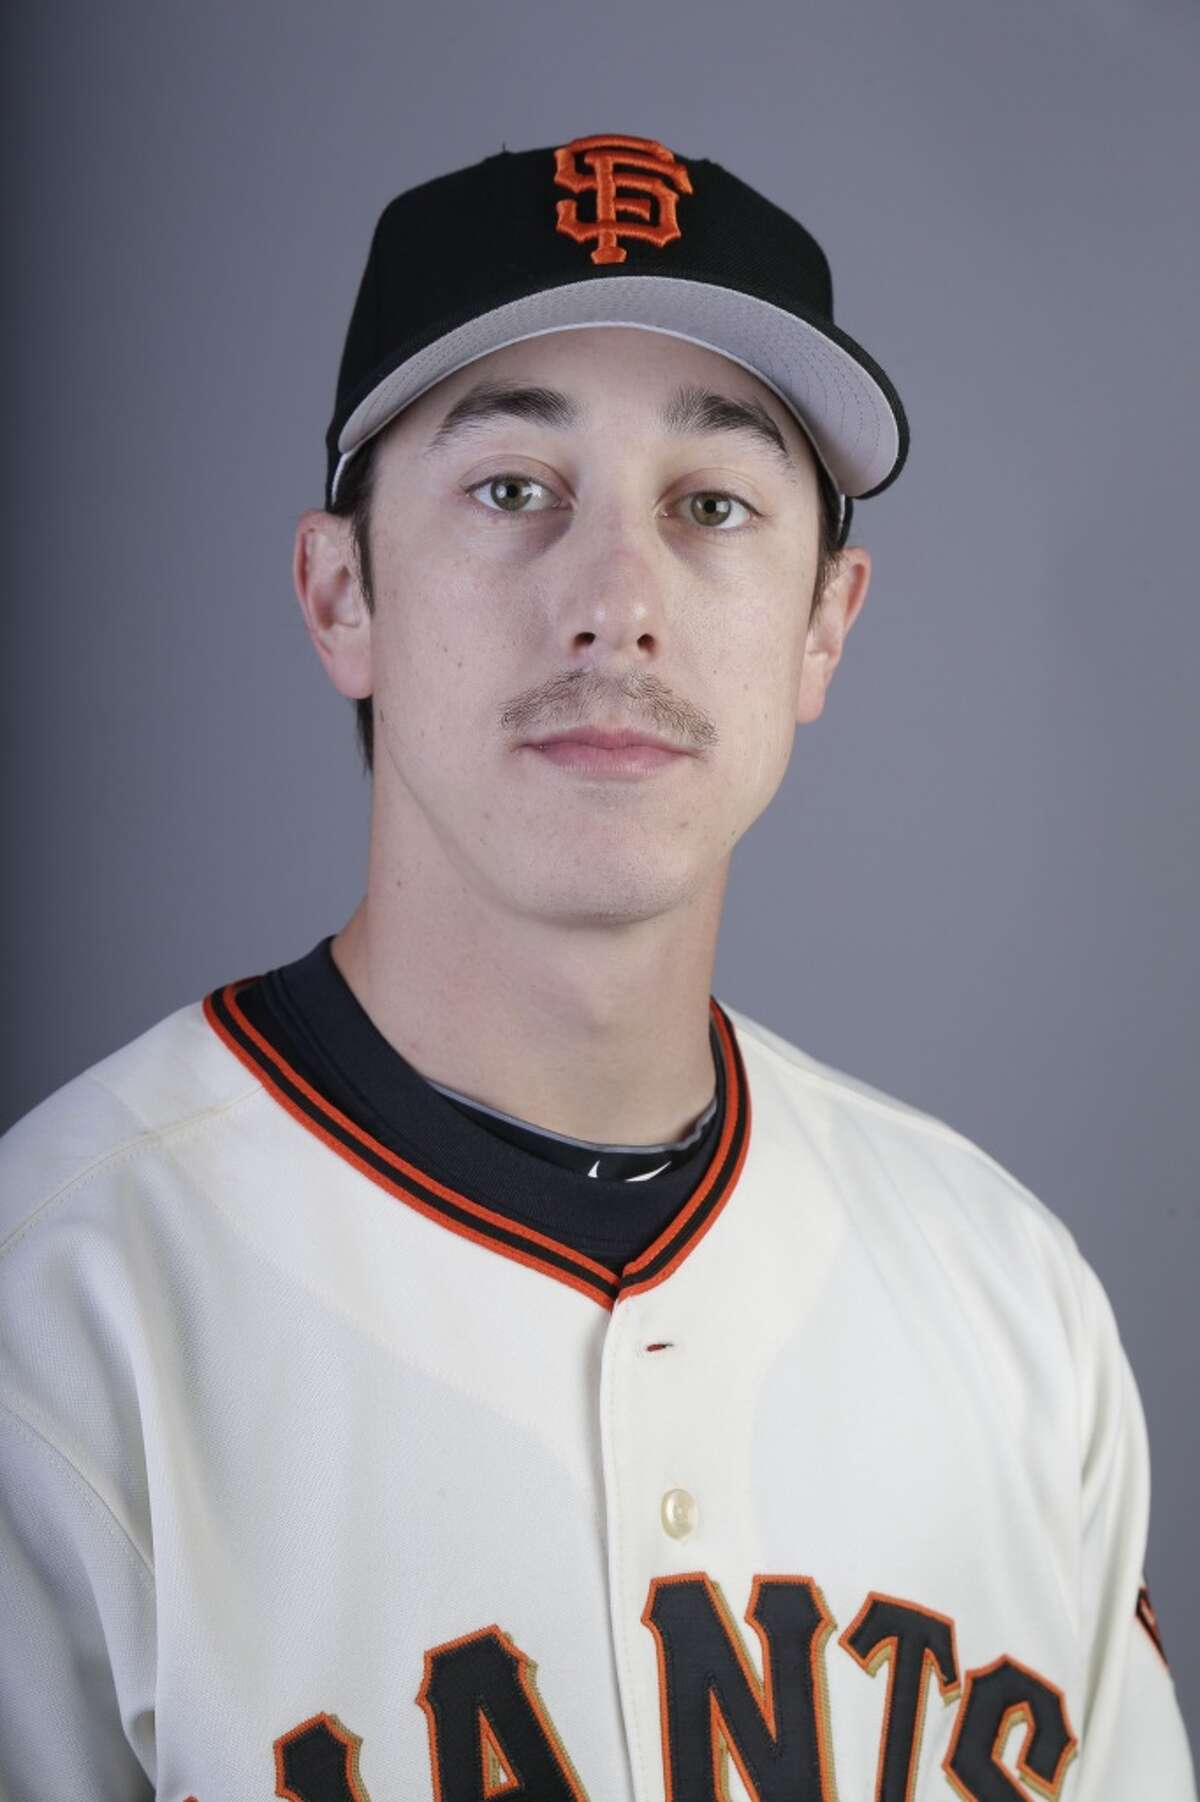 This is a 2014 photo of Tim Lincecum of the San Francisco Giants baseball team.